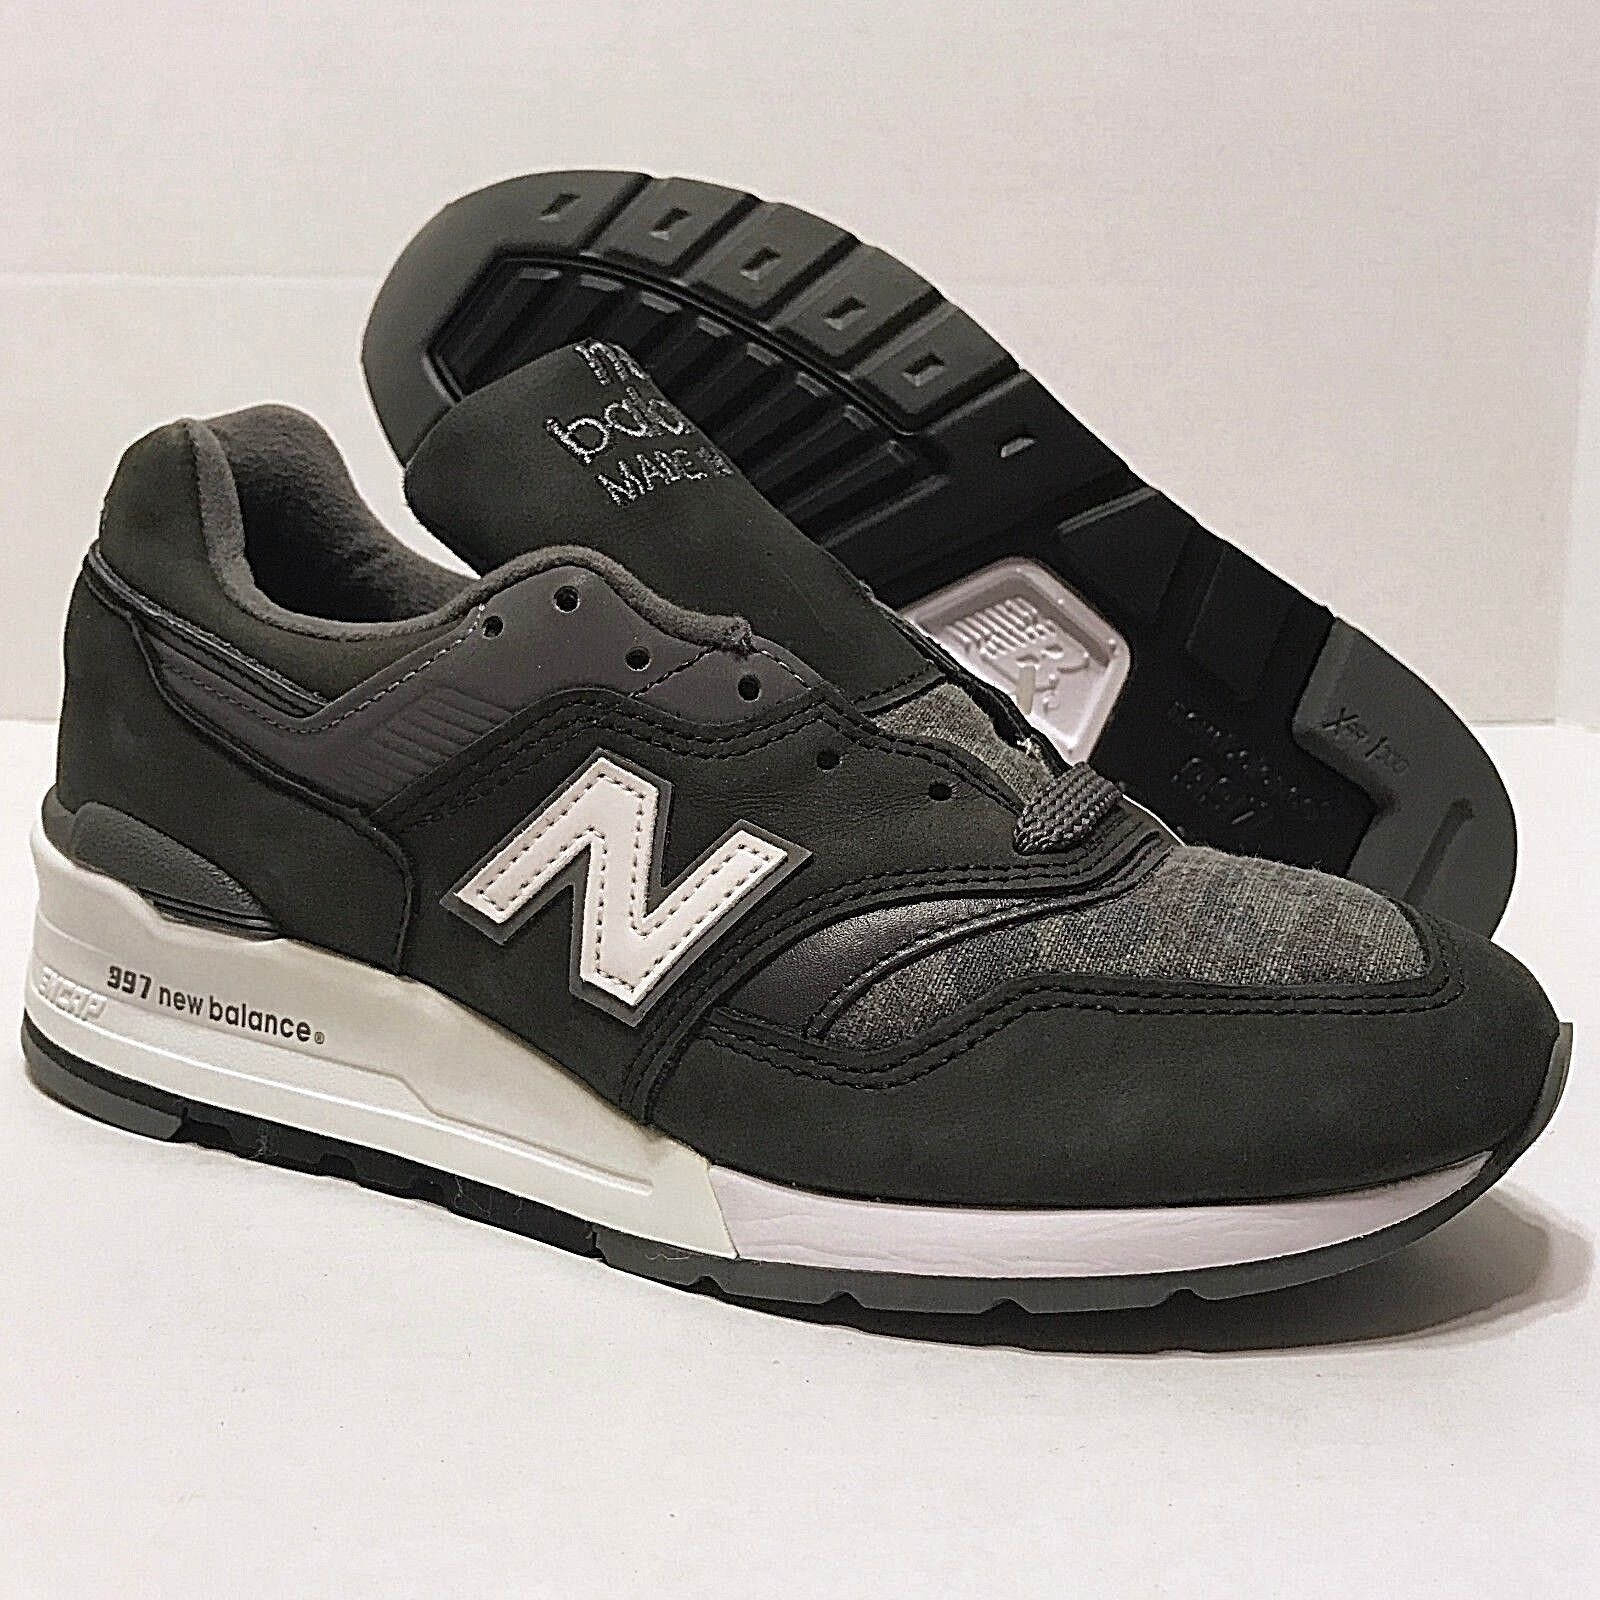 NEW BALANCE 997 Age of Exploration shoes Made in USA Grey MENS 6 or WOMENS 7.5